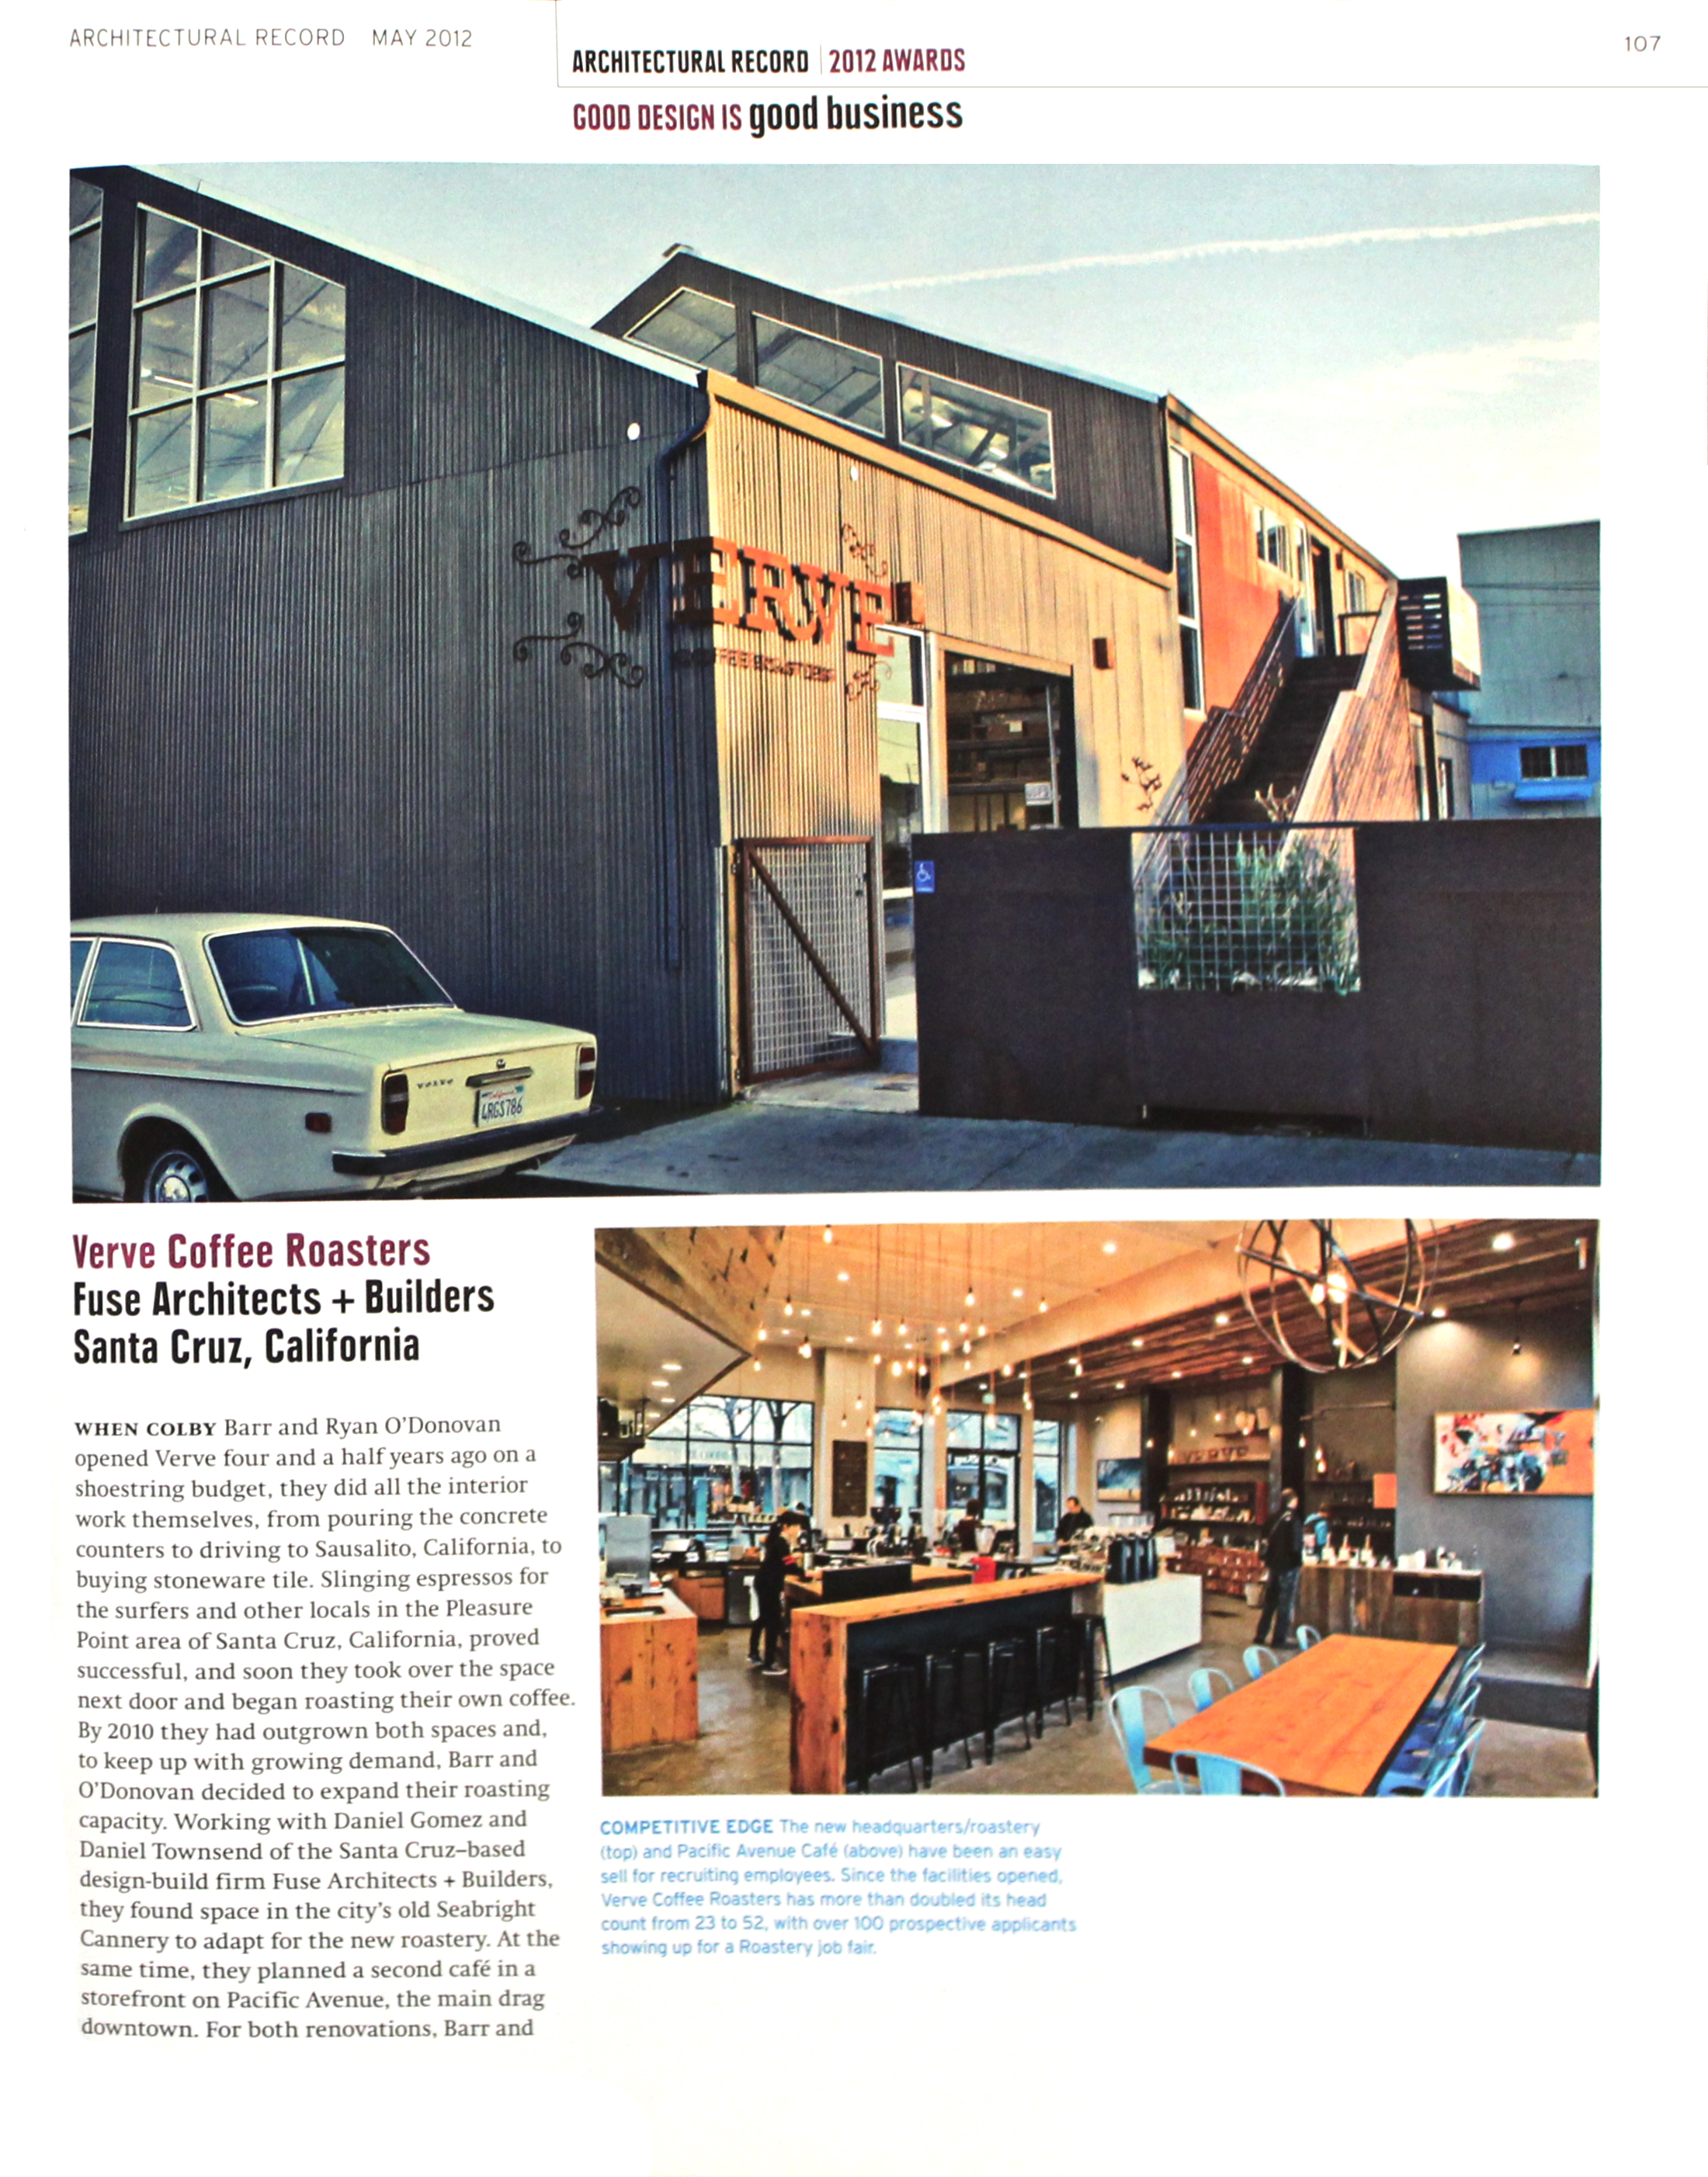 Verve Coffee Roasters Headquarters article - Architectural Record magazine